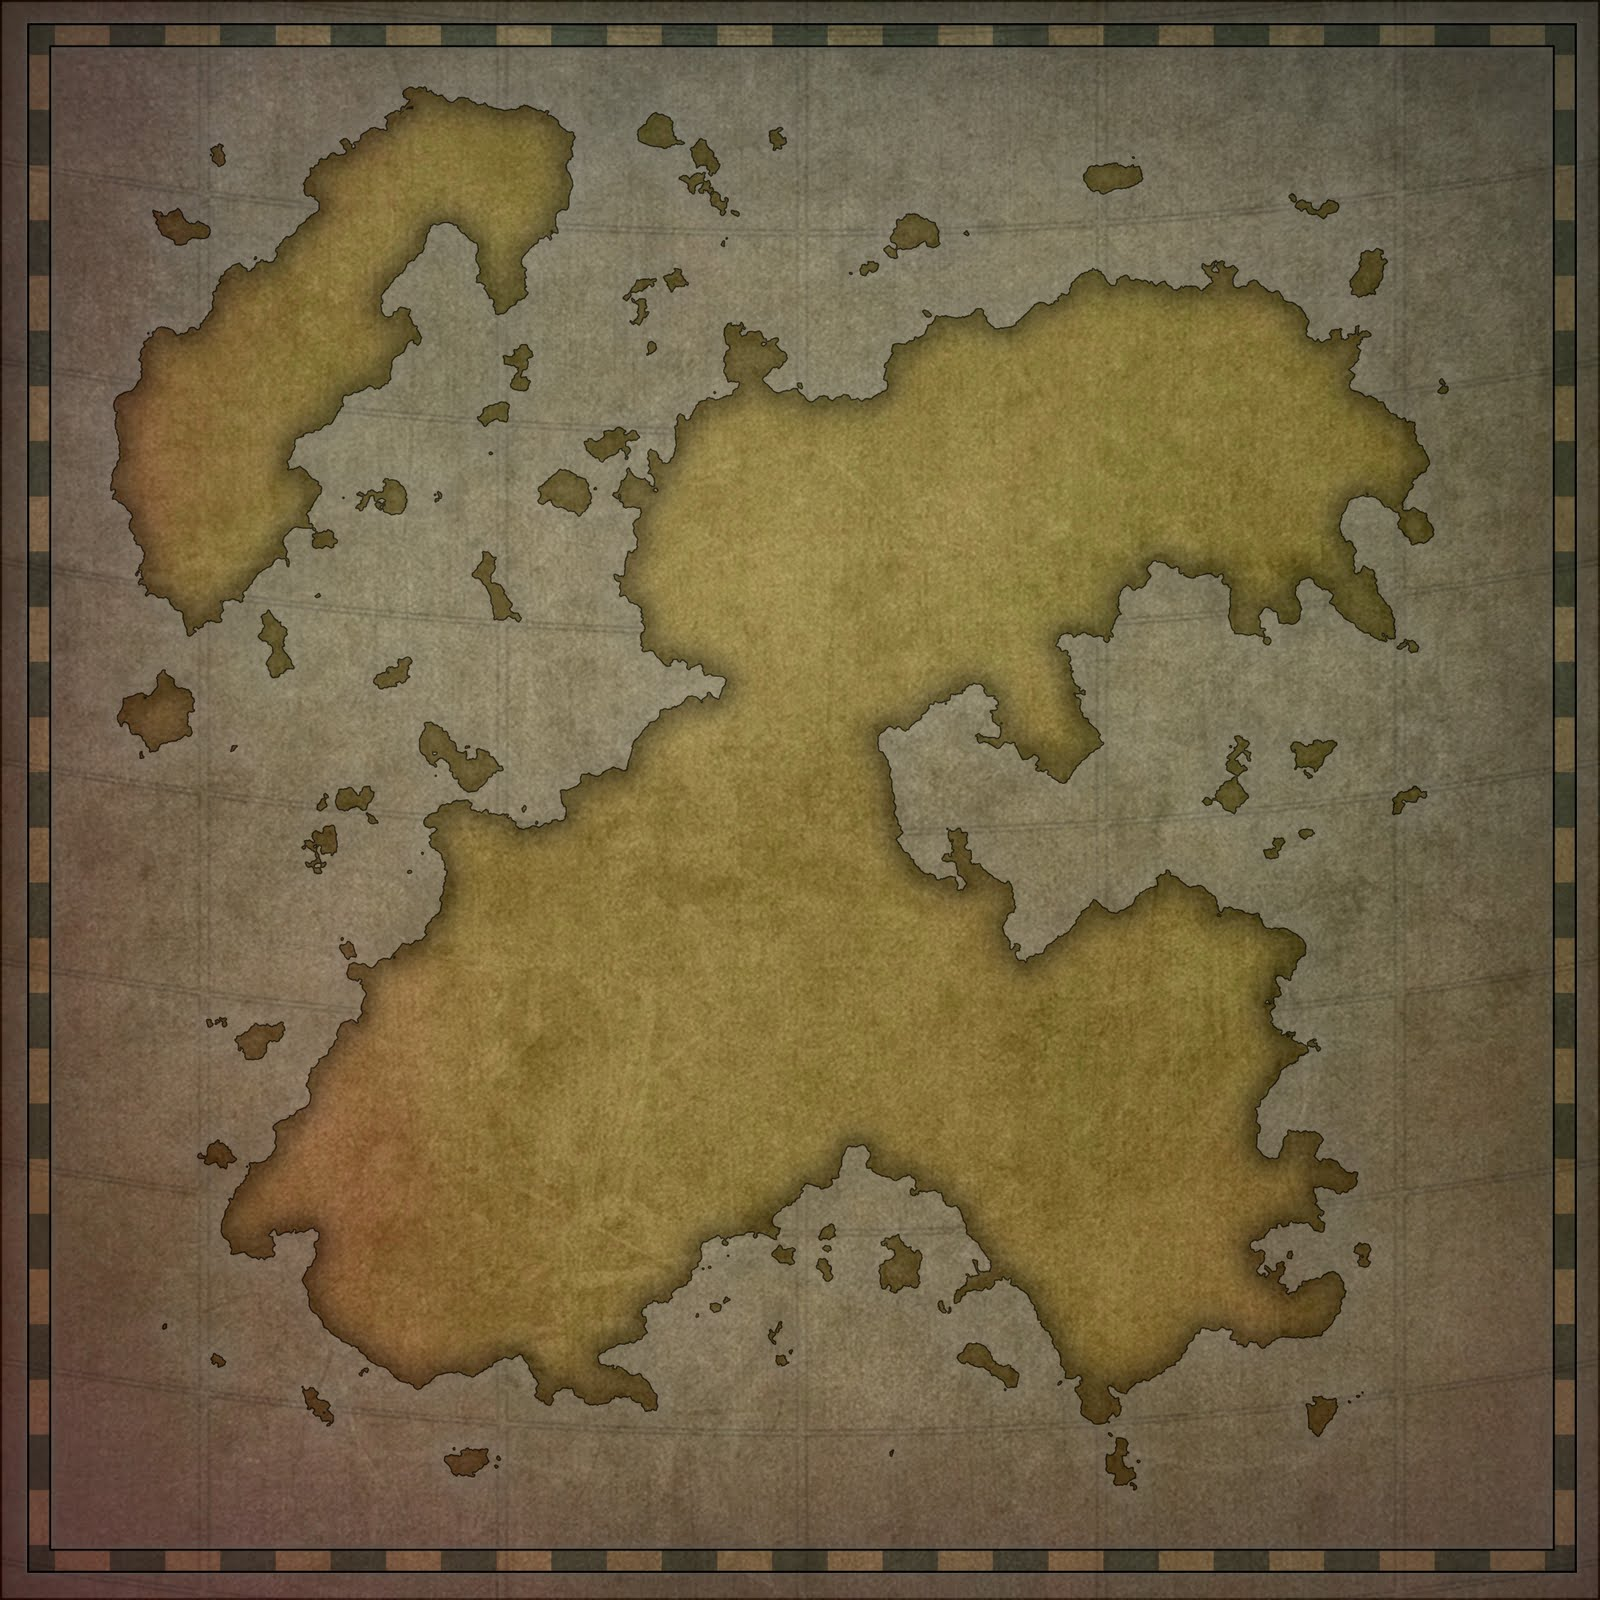 Free Map Monday New Free Continent Map The Labyrinth - Free continent maps